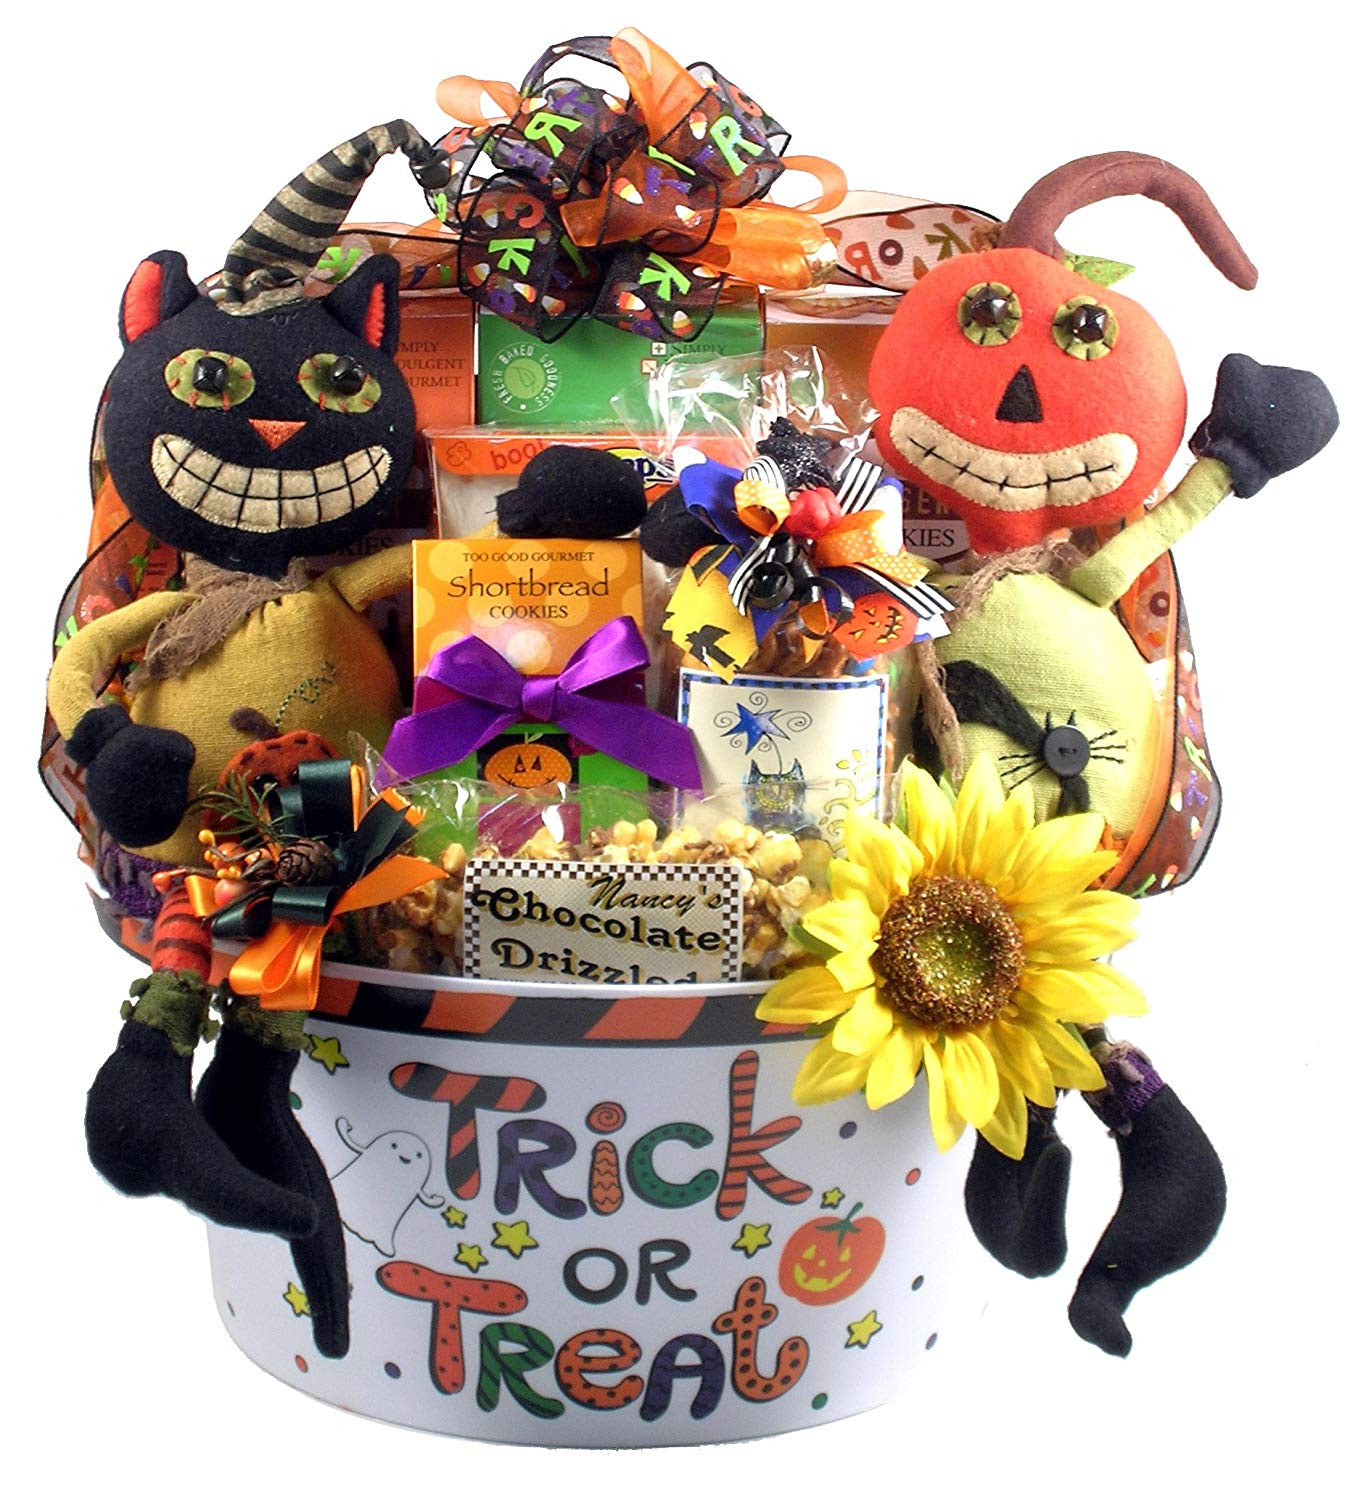 Best ideas about Halloween Gift Basket Ideas For Adults . Save or Pin Best Halloween Gift Baskets for Adults and Kids Now.